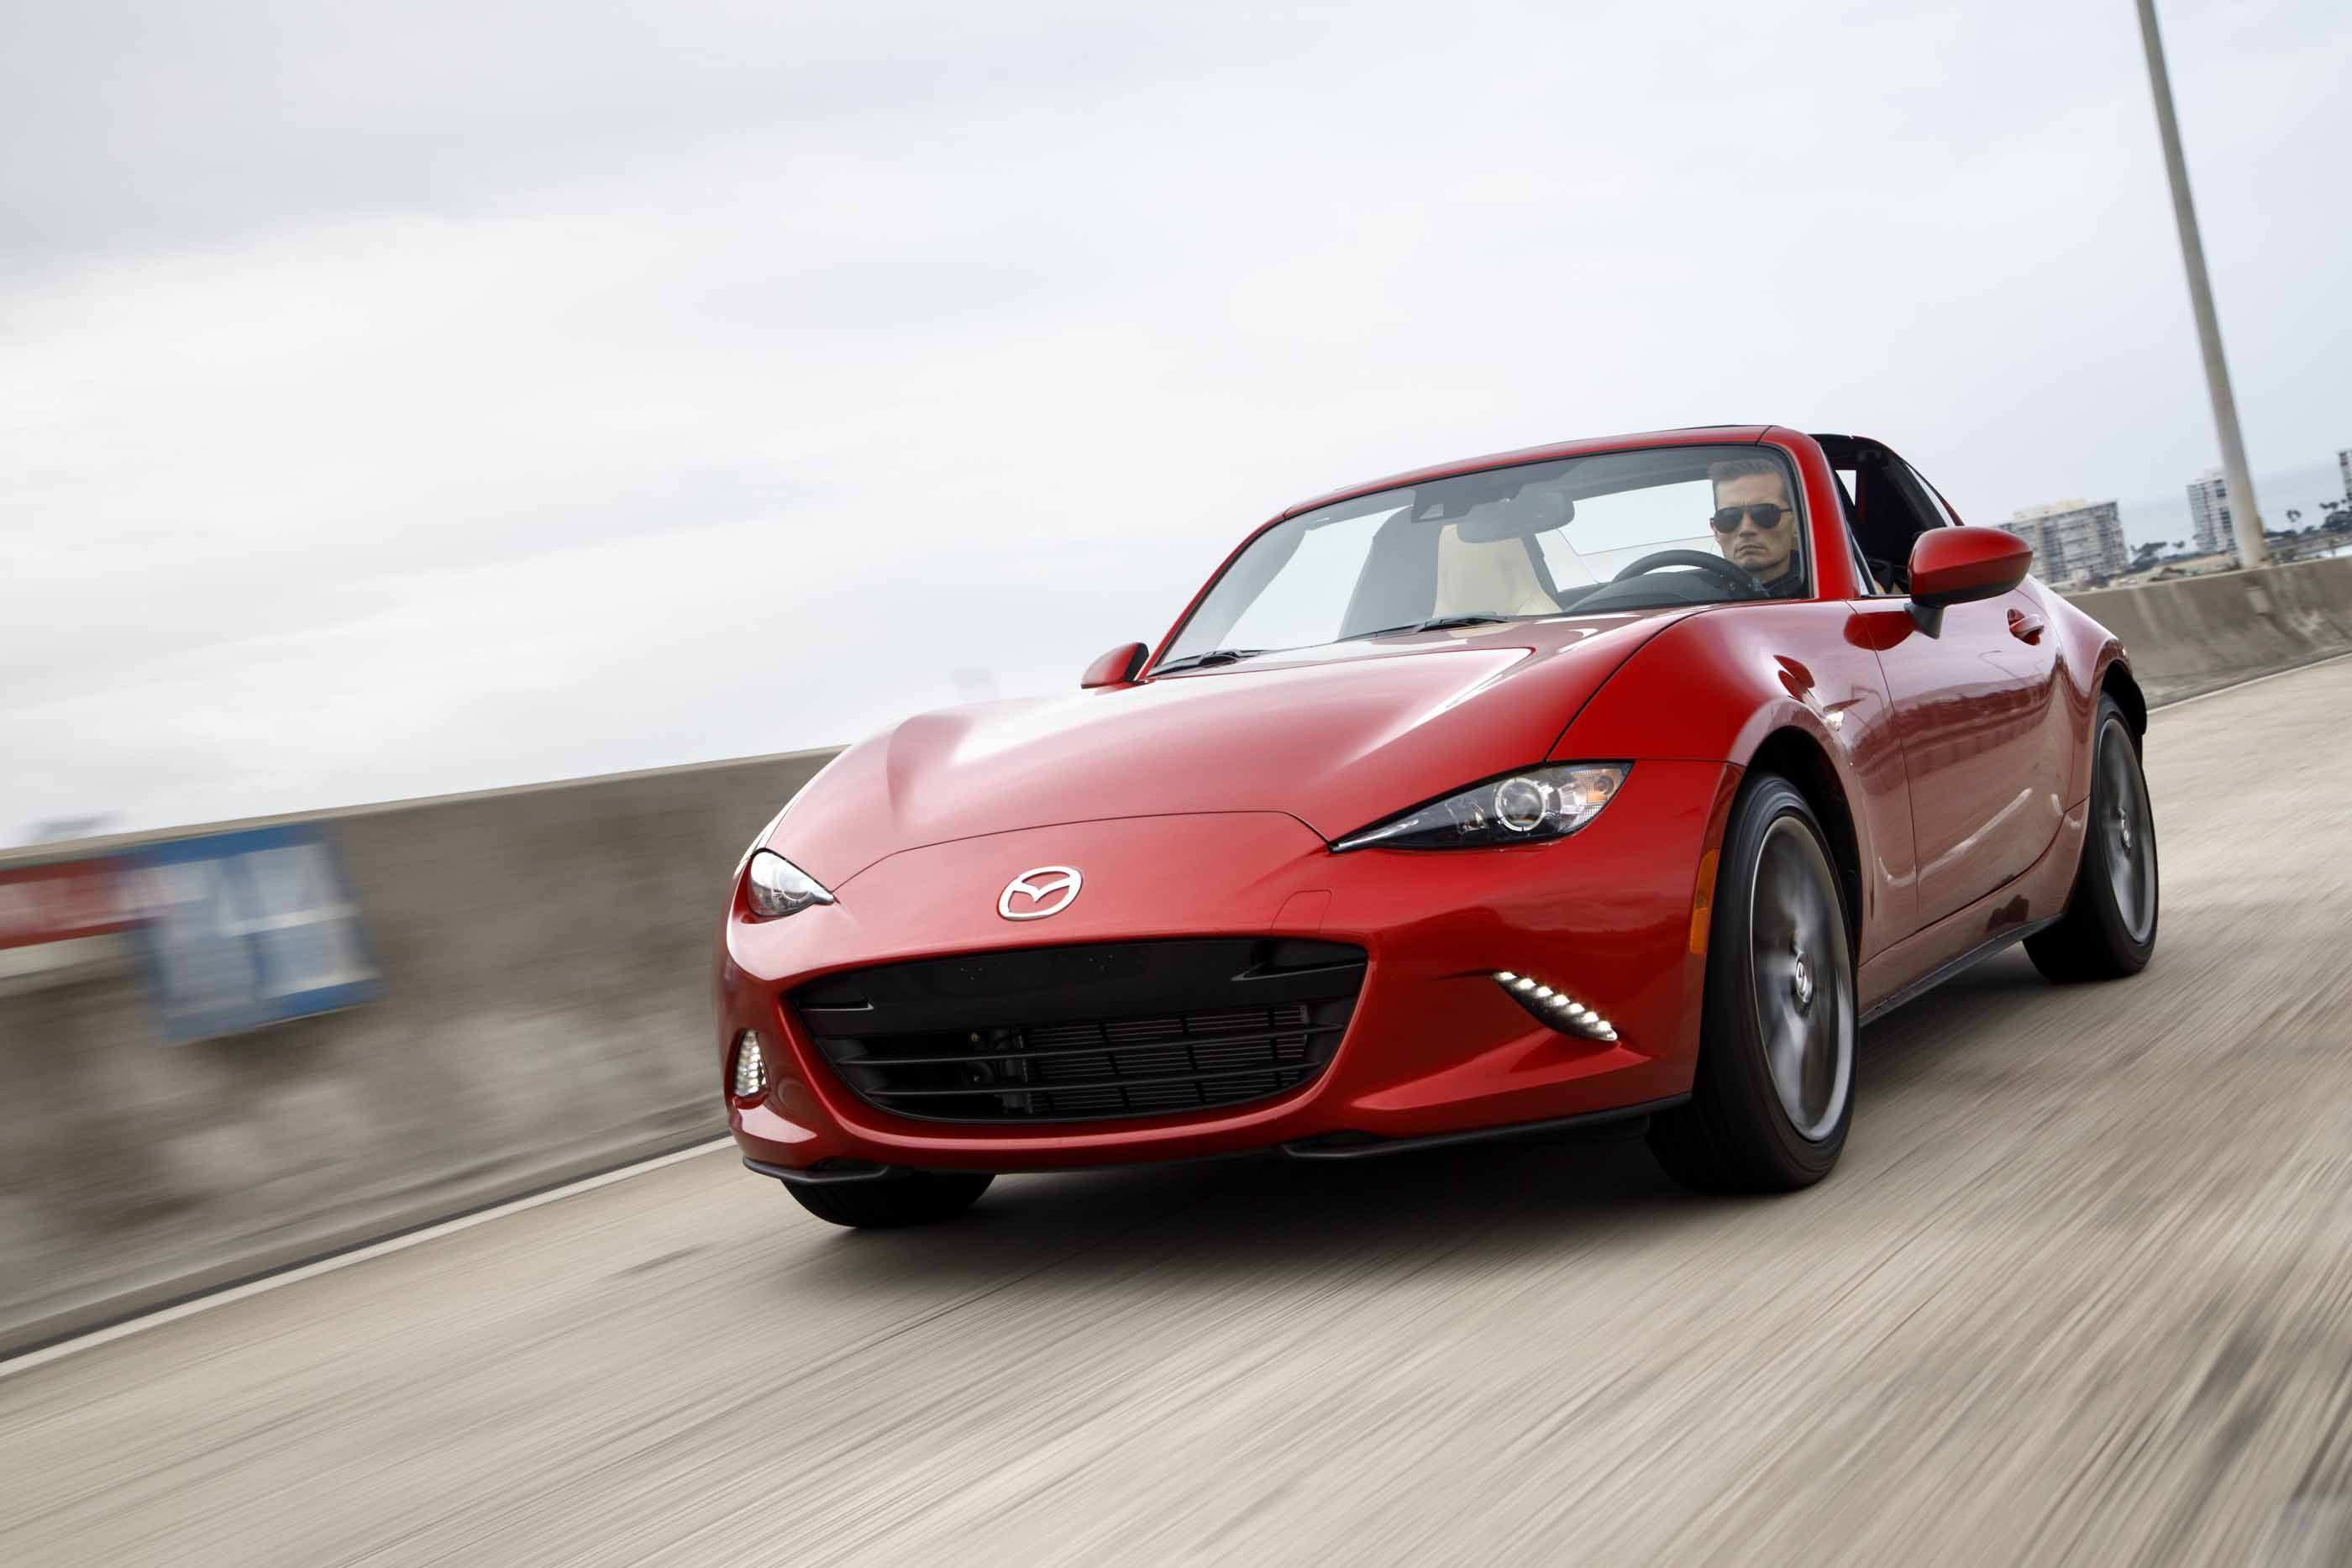 66 The Best 2020 Mazda Mx 5 Miata Specs And Review